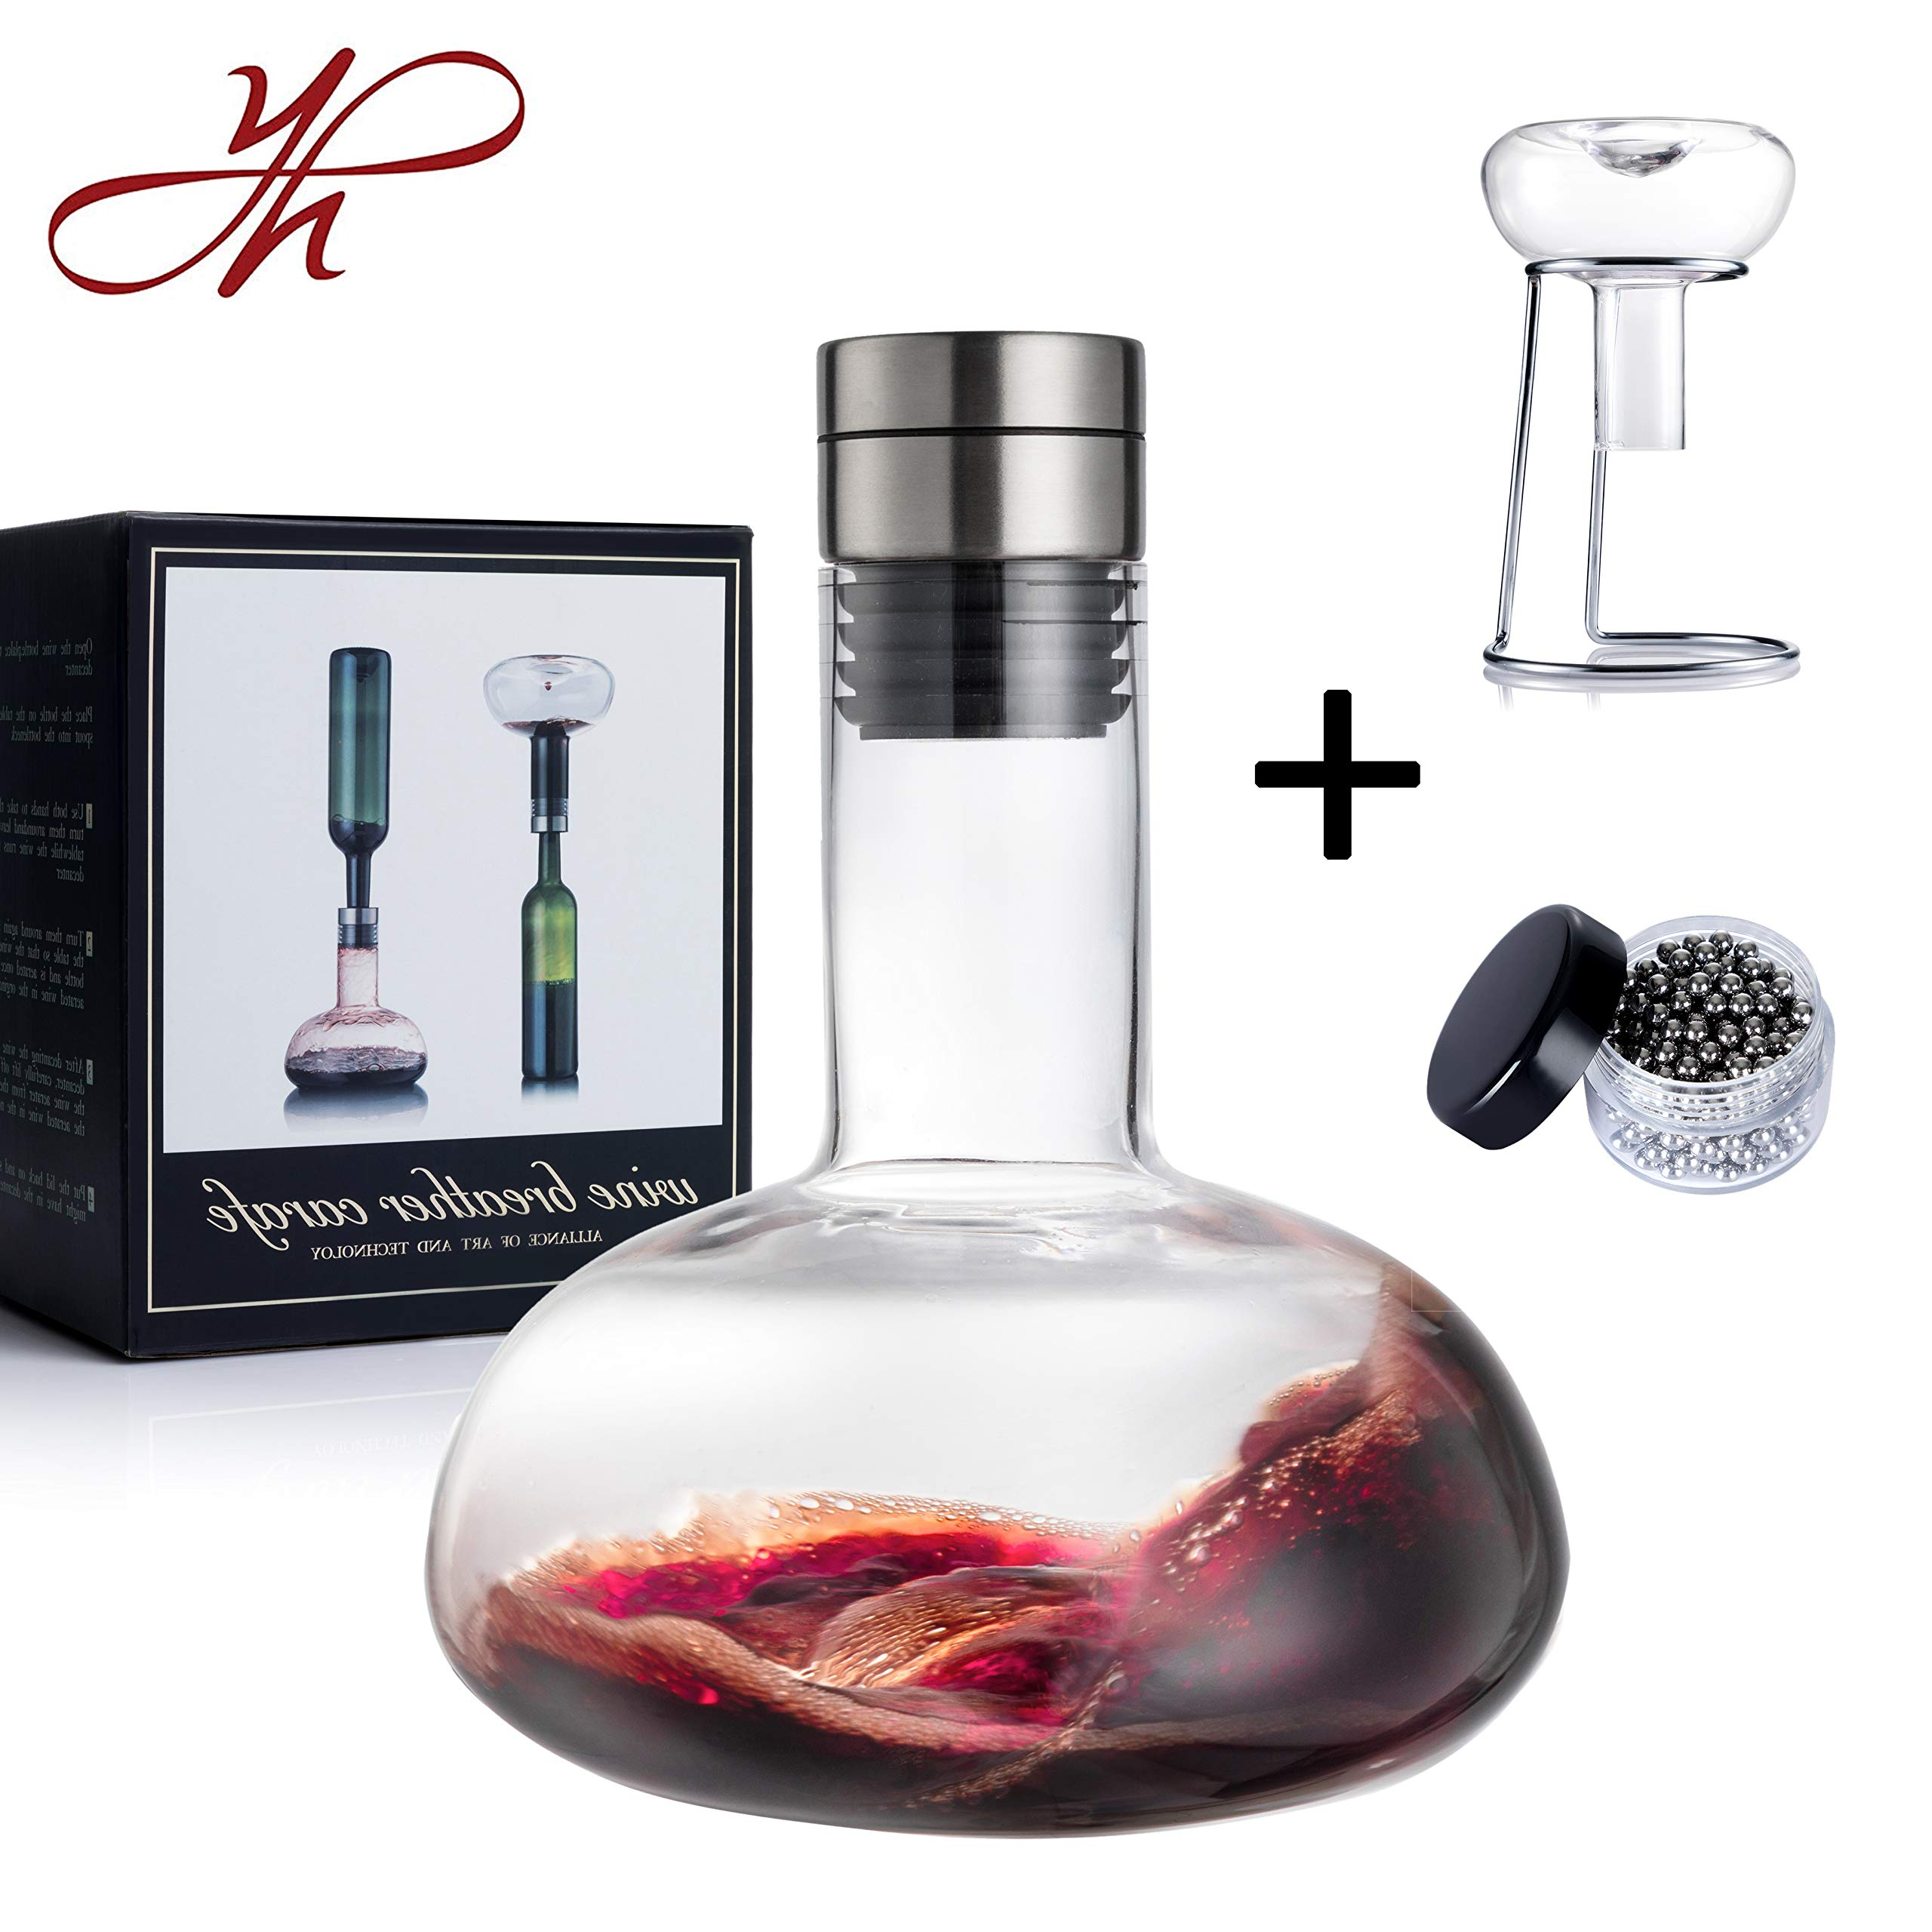 YouYah Wine Decanter Set,Wine Breather Carafe with Drying Stand,Steel Cleaning Beads and Aerator Lid,Crystal Glass,Wine Aerator,Wine Accessories,Wine Gift (New Packing) by NEW PACIFIC YOUYAH